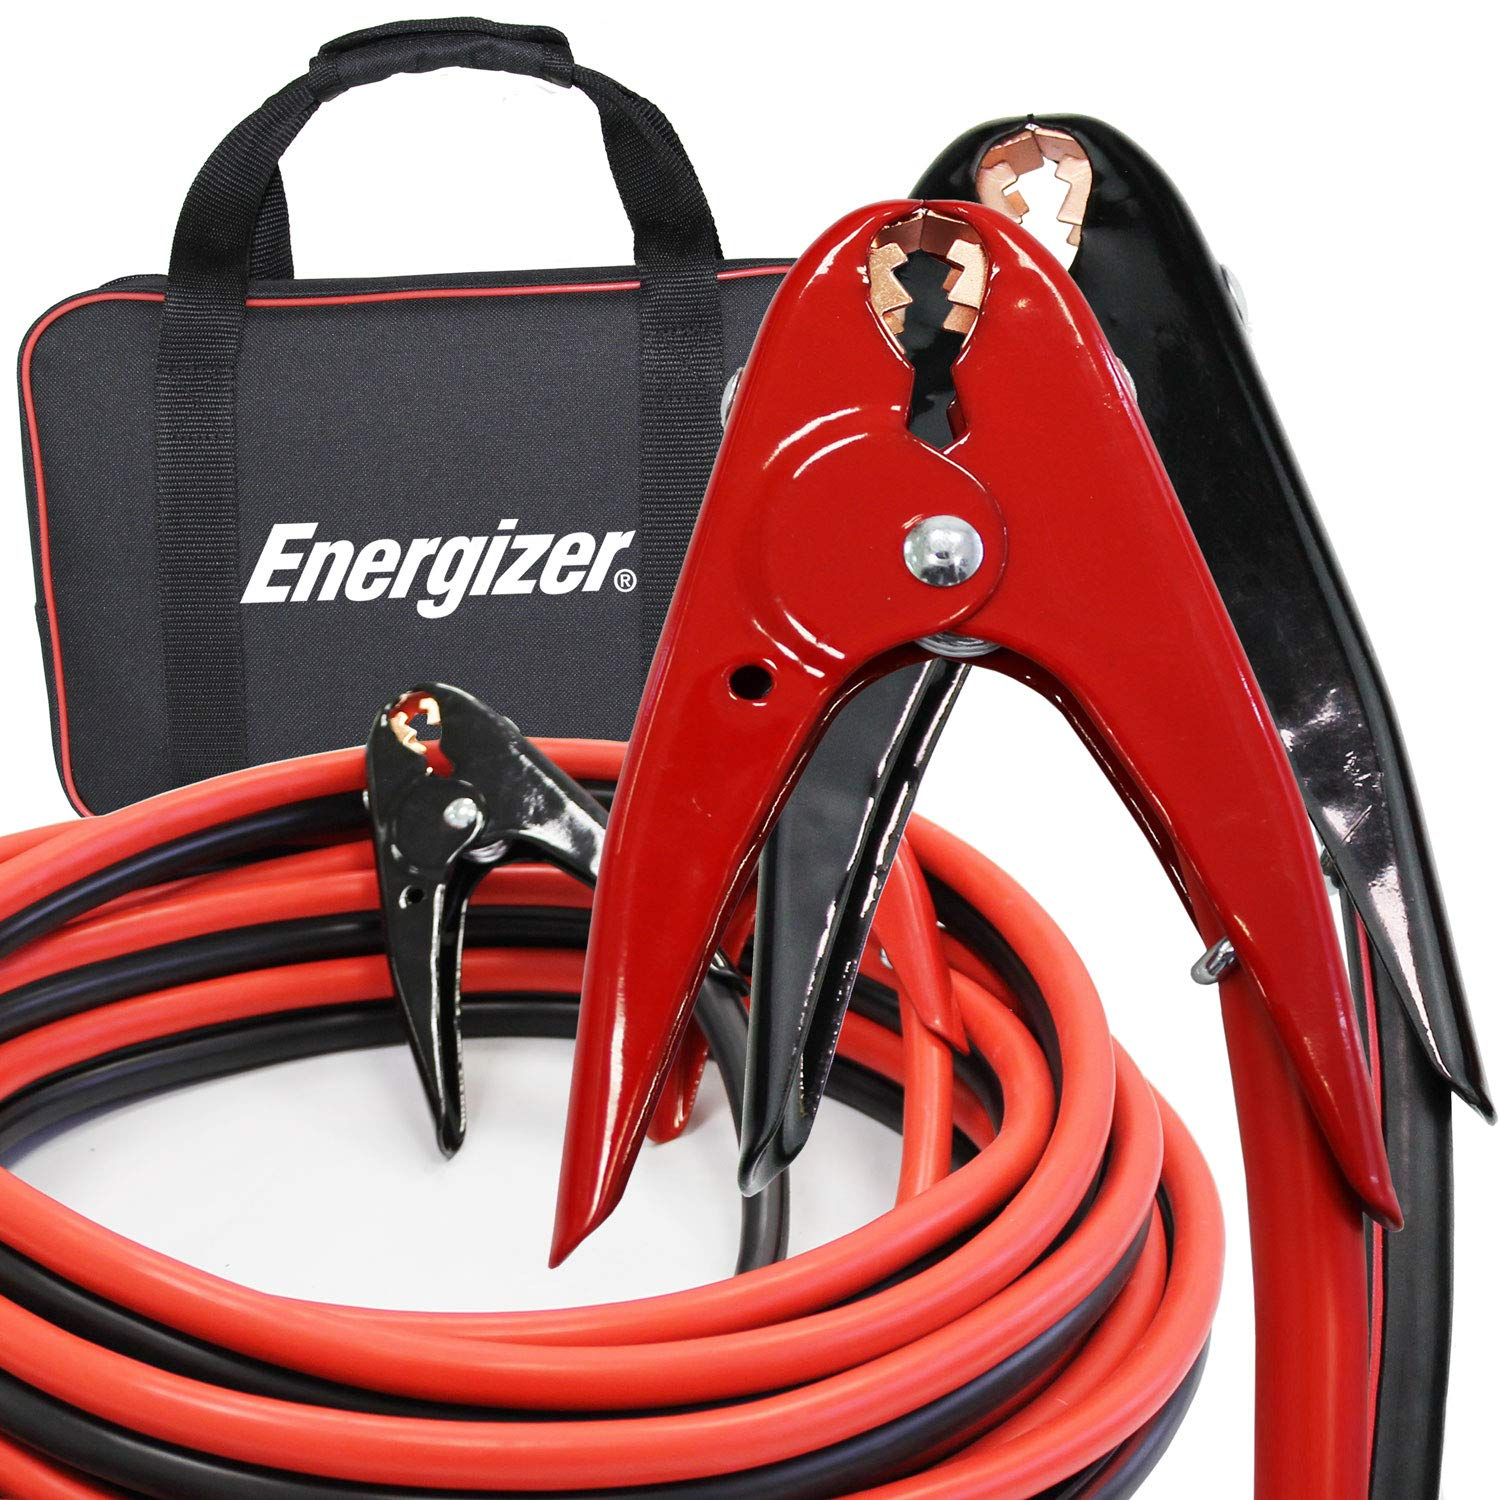 Energizer 2 Gauge Jumper Cables